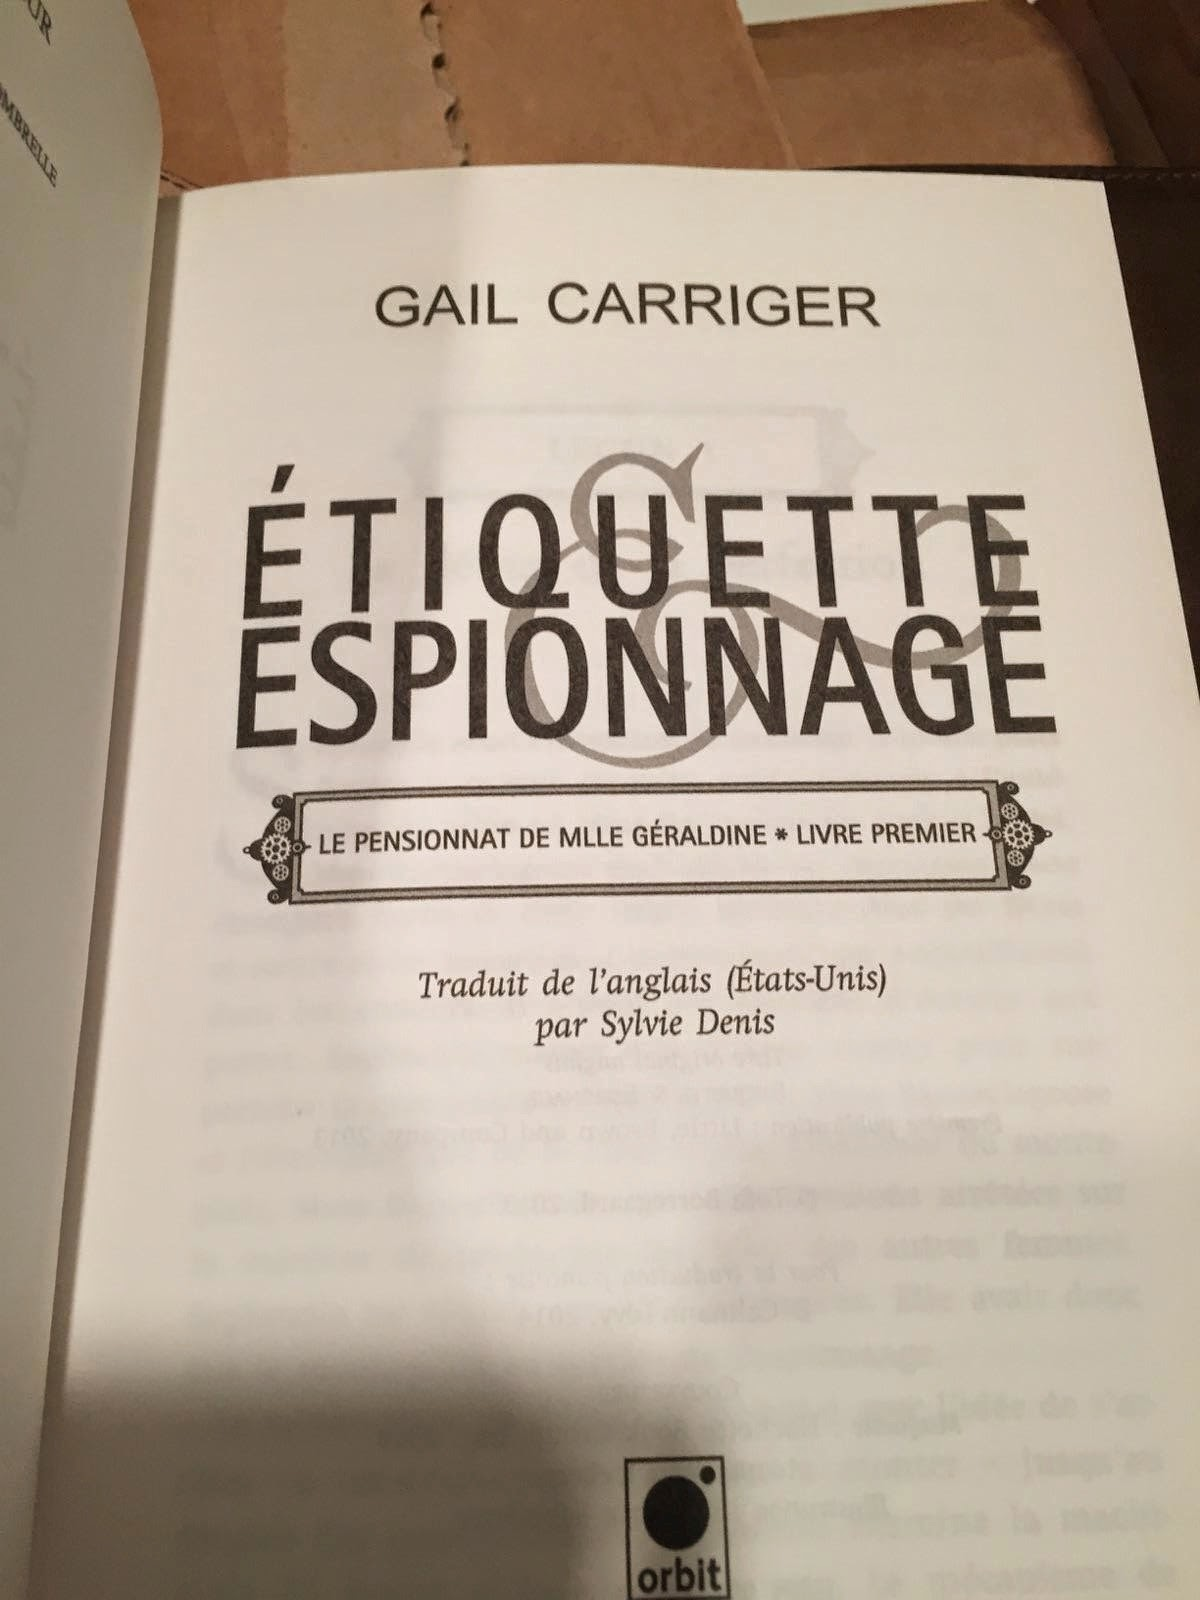 I Received The Prize Part Of Etiquette & Espionage Wining A French Award  For Best Translated Young Adult Novel It's A Copy Of The French Book  Inside A